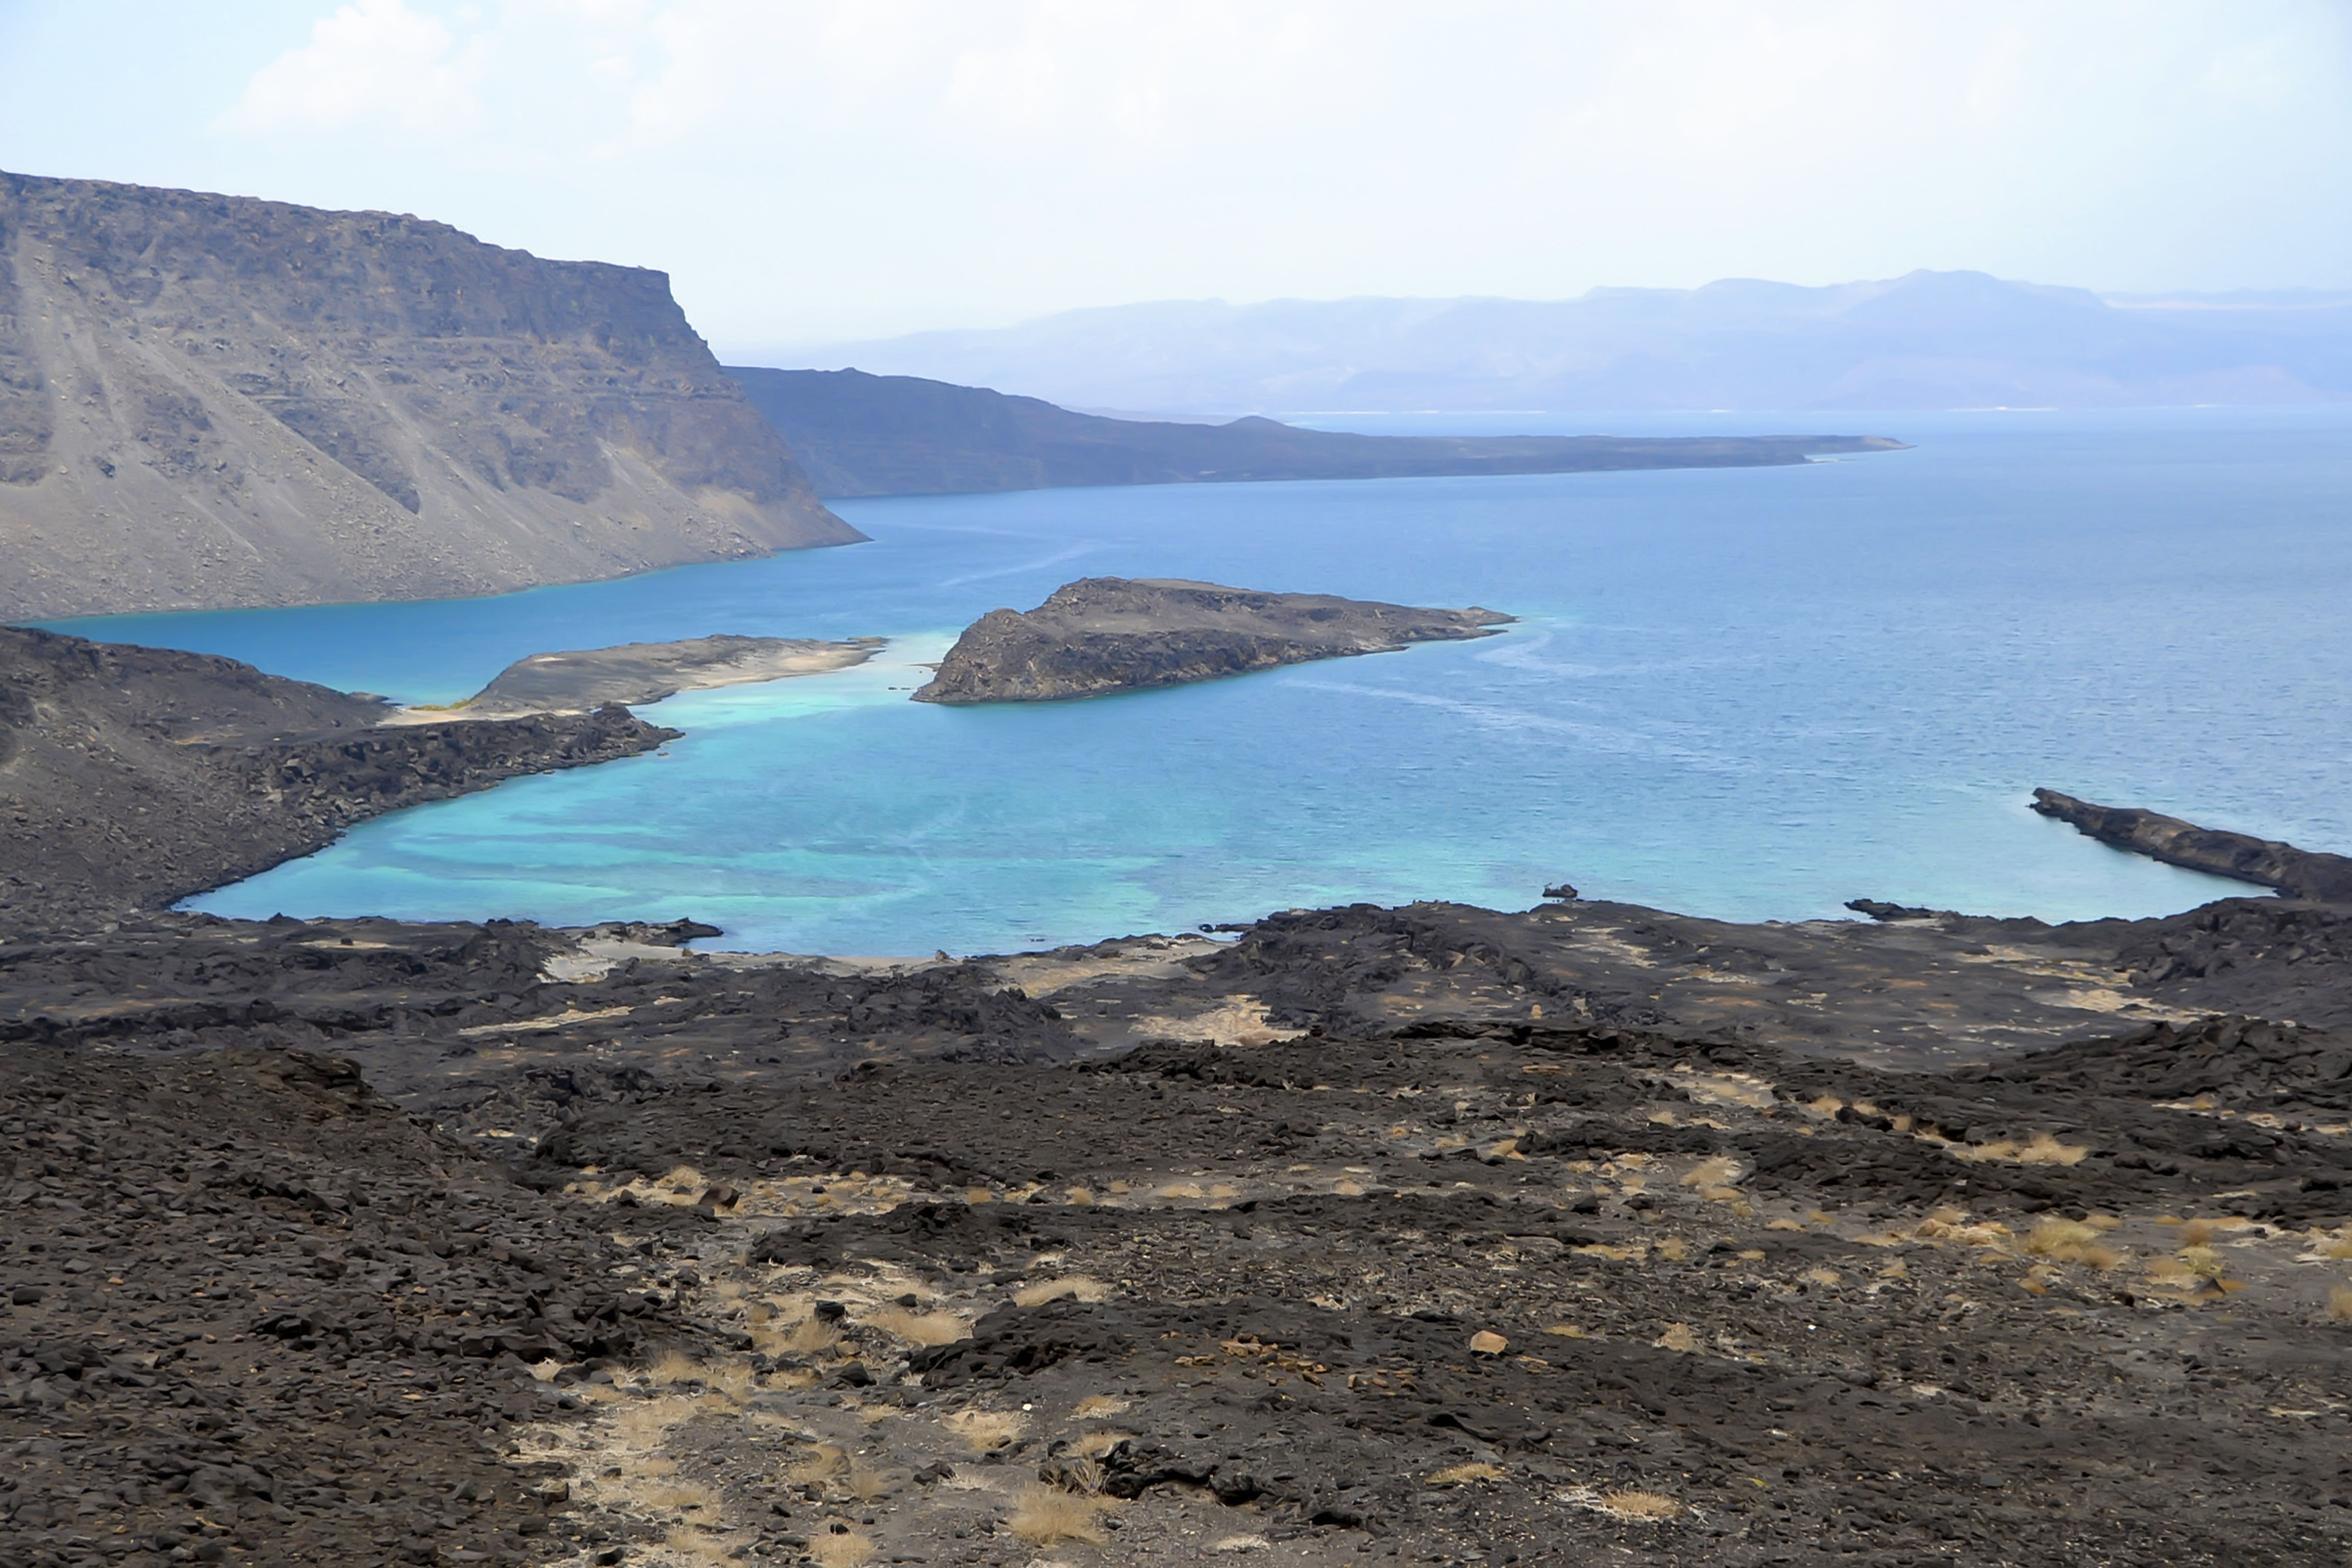 Panorama view of dark sand beach in Djibouti, with blue waters, cliffs and clear skies.